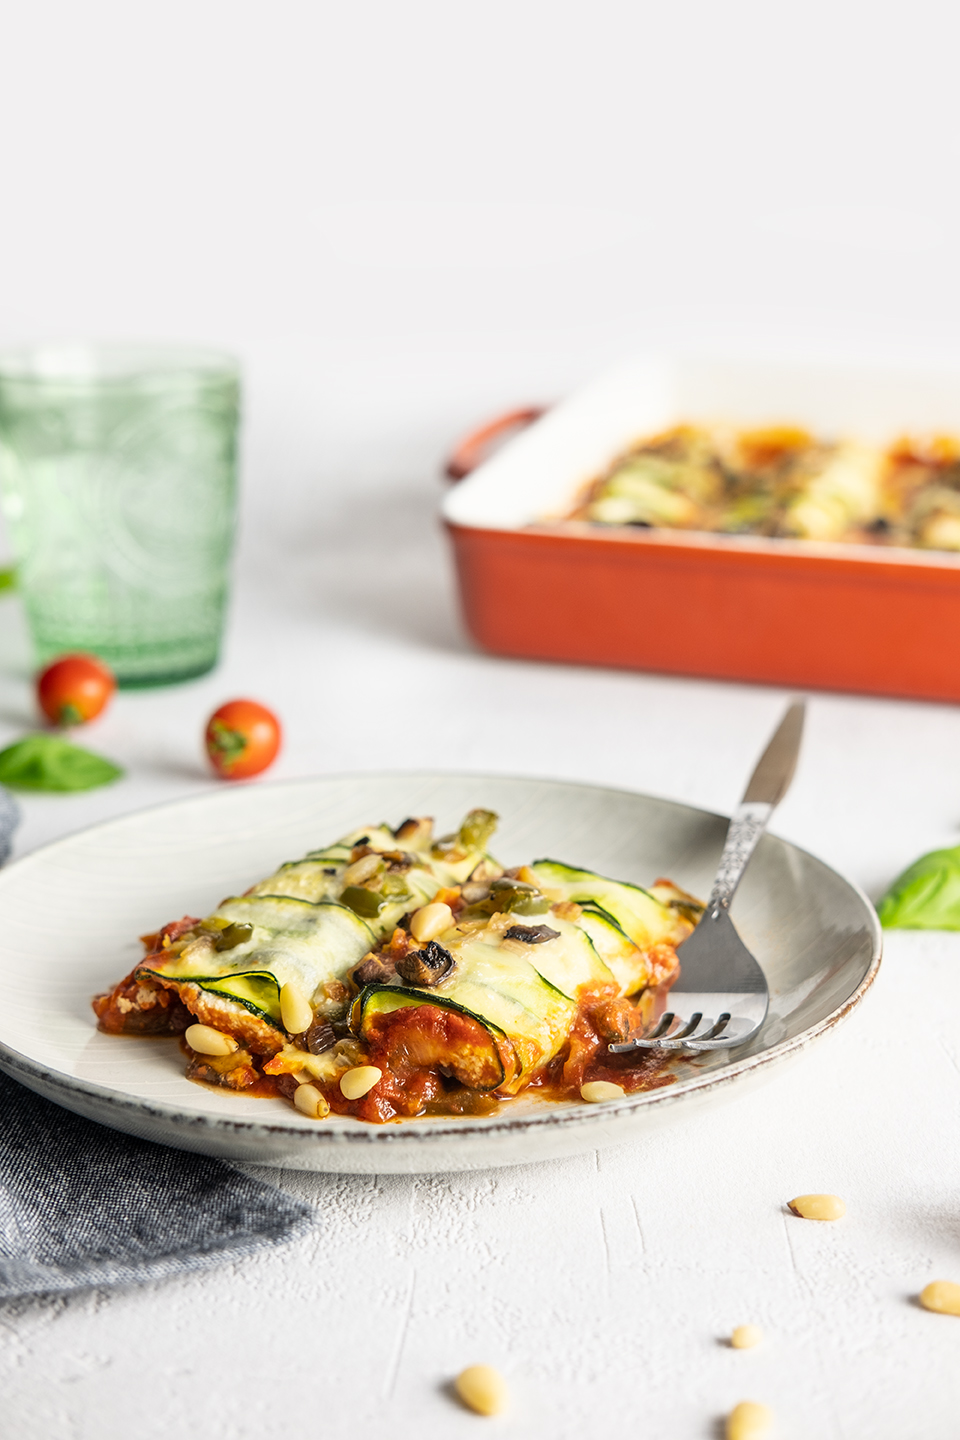 JodiLoves_Low-Carb Zucchini-Ricotta-Cannelloni_Low_plated-AFTER.jpg